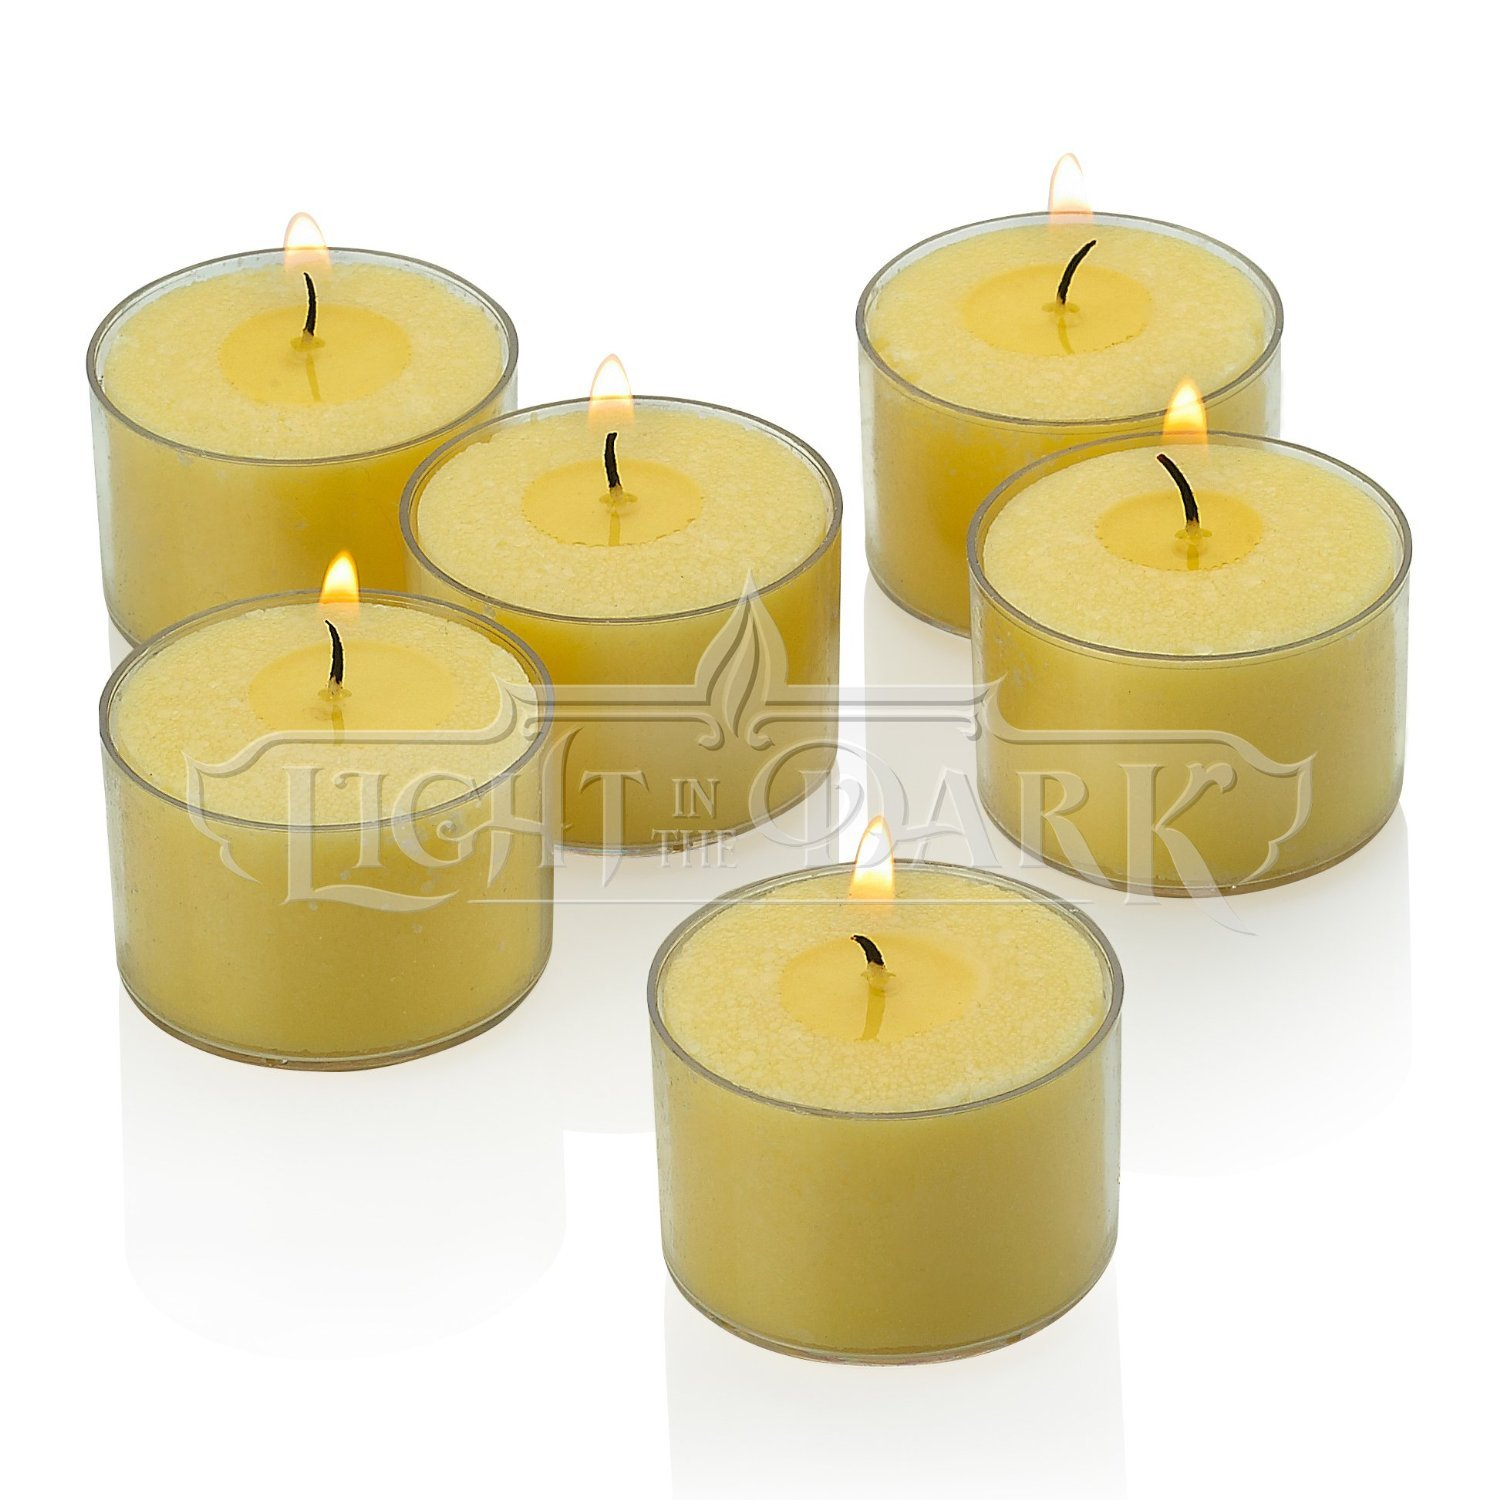 Ivory Tealight Candles with Clear Cup - Set of 72 Unscented Tea Lights - 8 Hour Burn Time